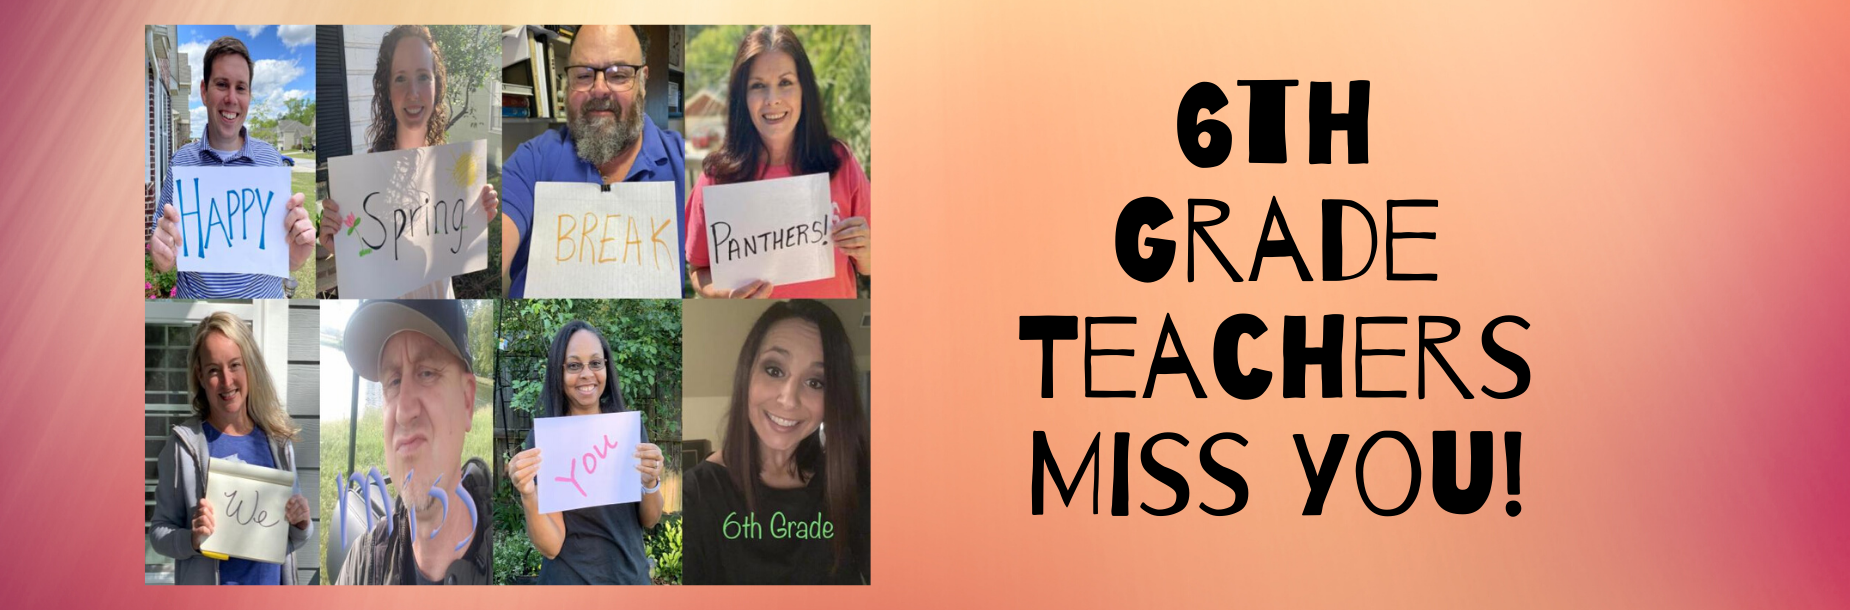 6th grade teachers picture saying they miss their students